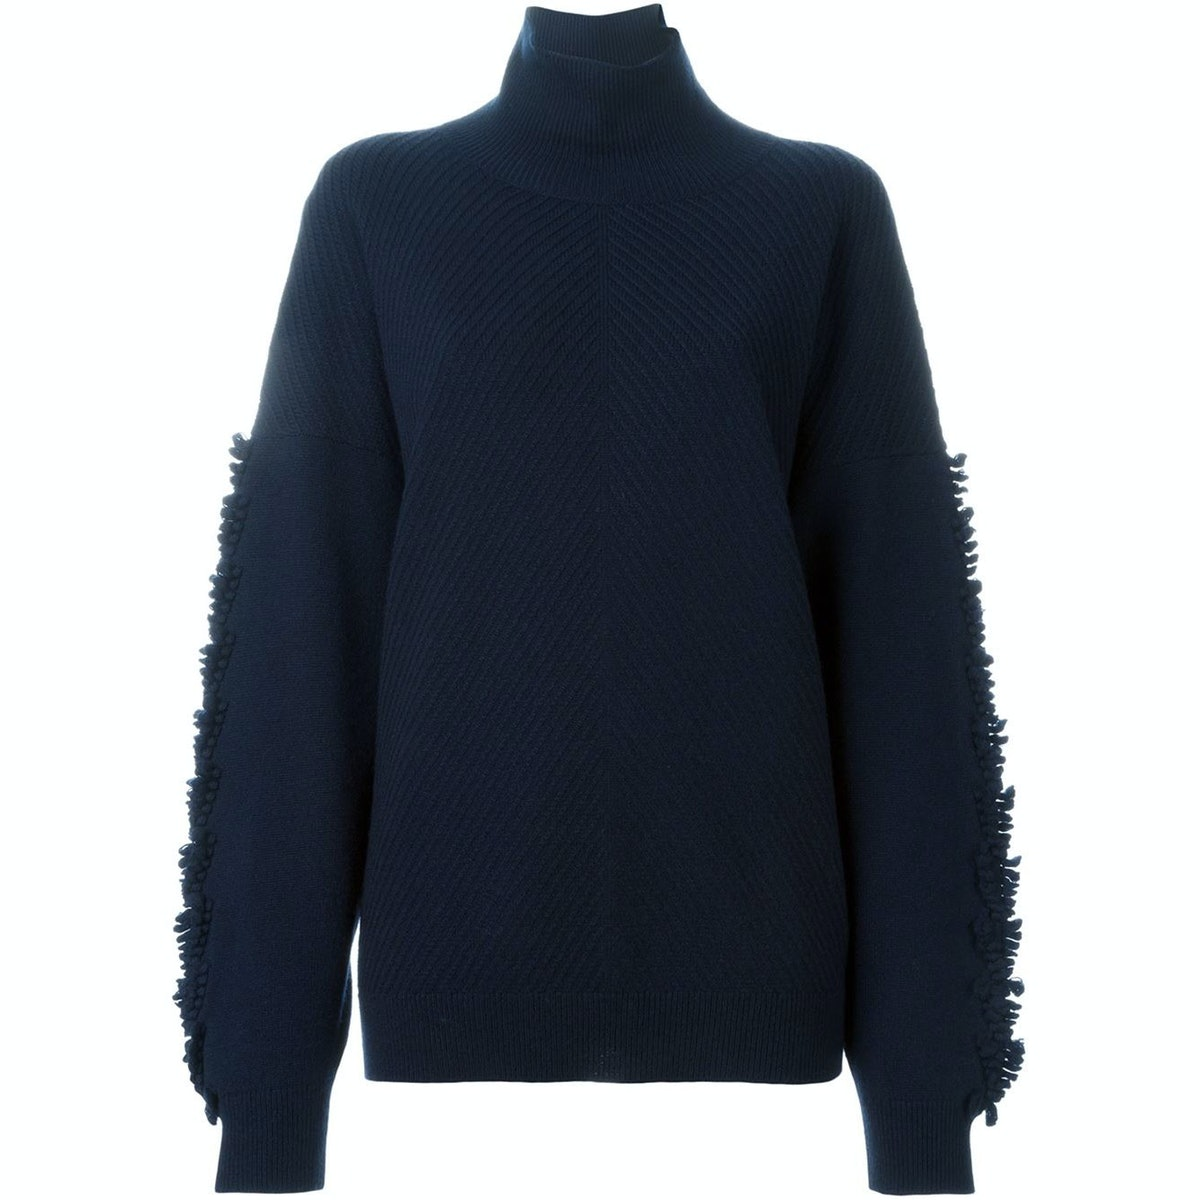 Barrie sweater